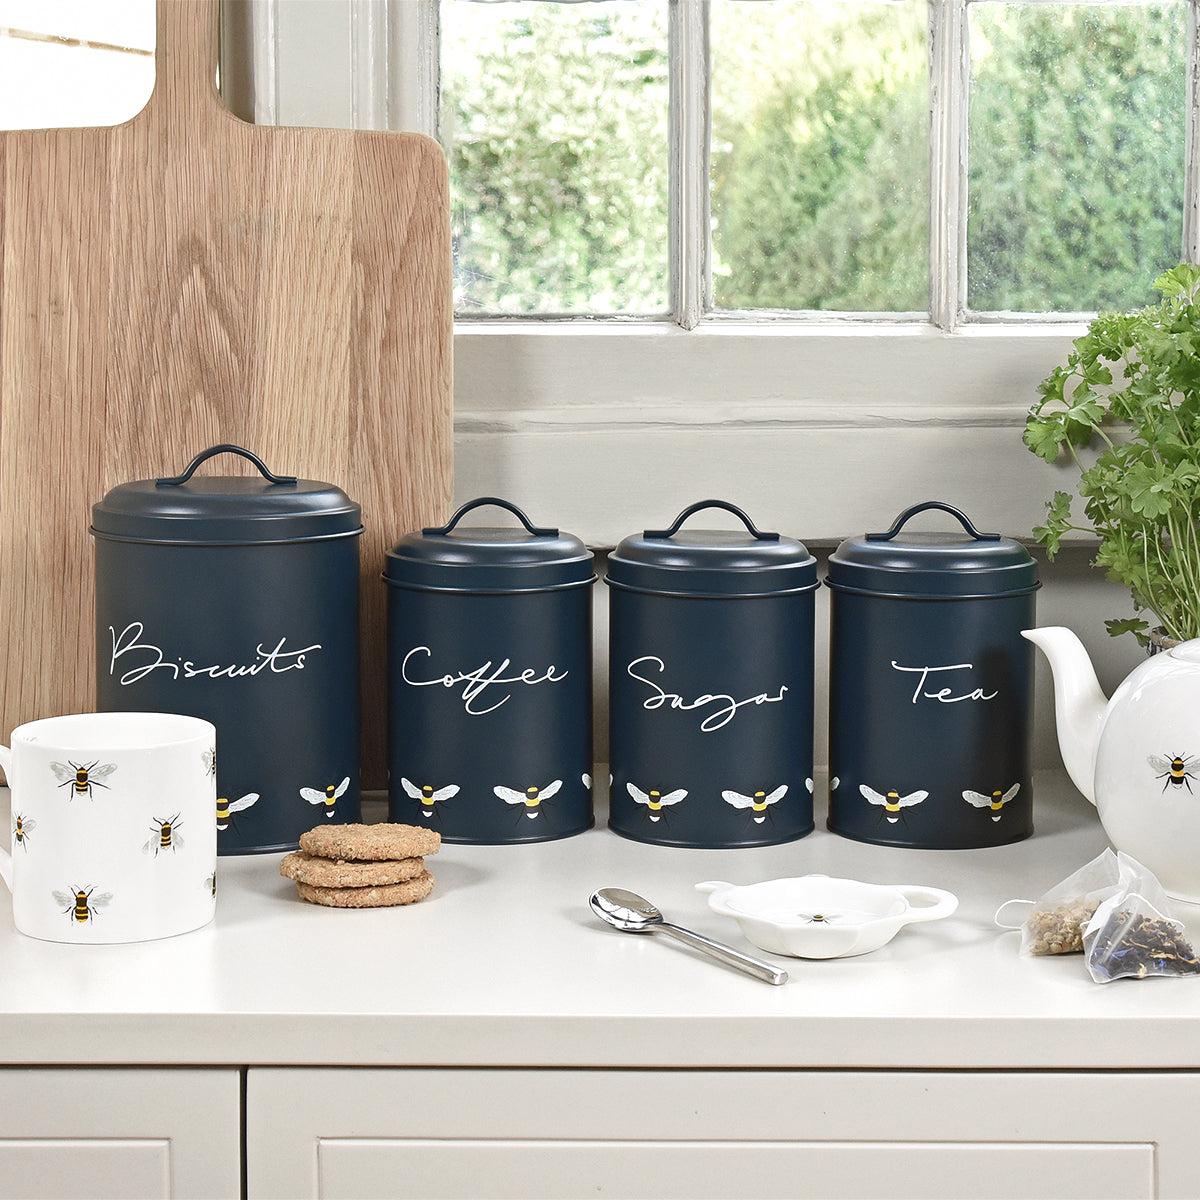 A set of three Sophie Allport storage tins for tea, coffee and sugar. Made from galvanised steel with a navy background.